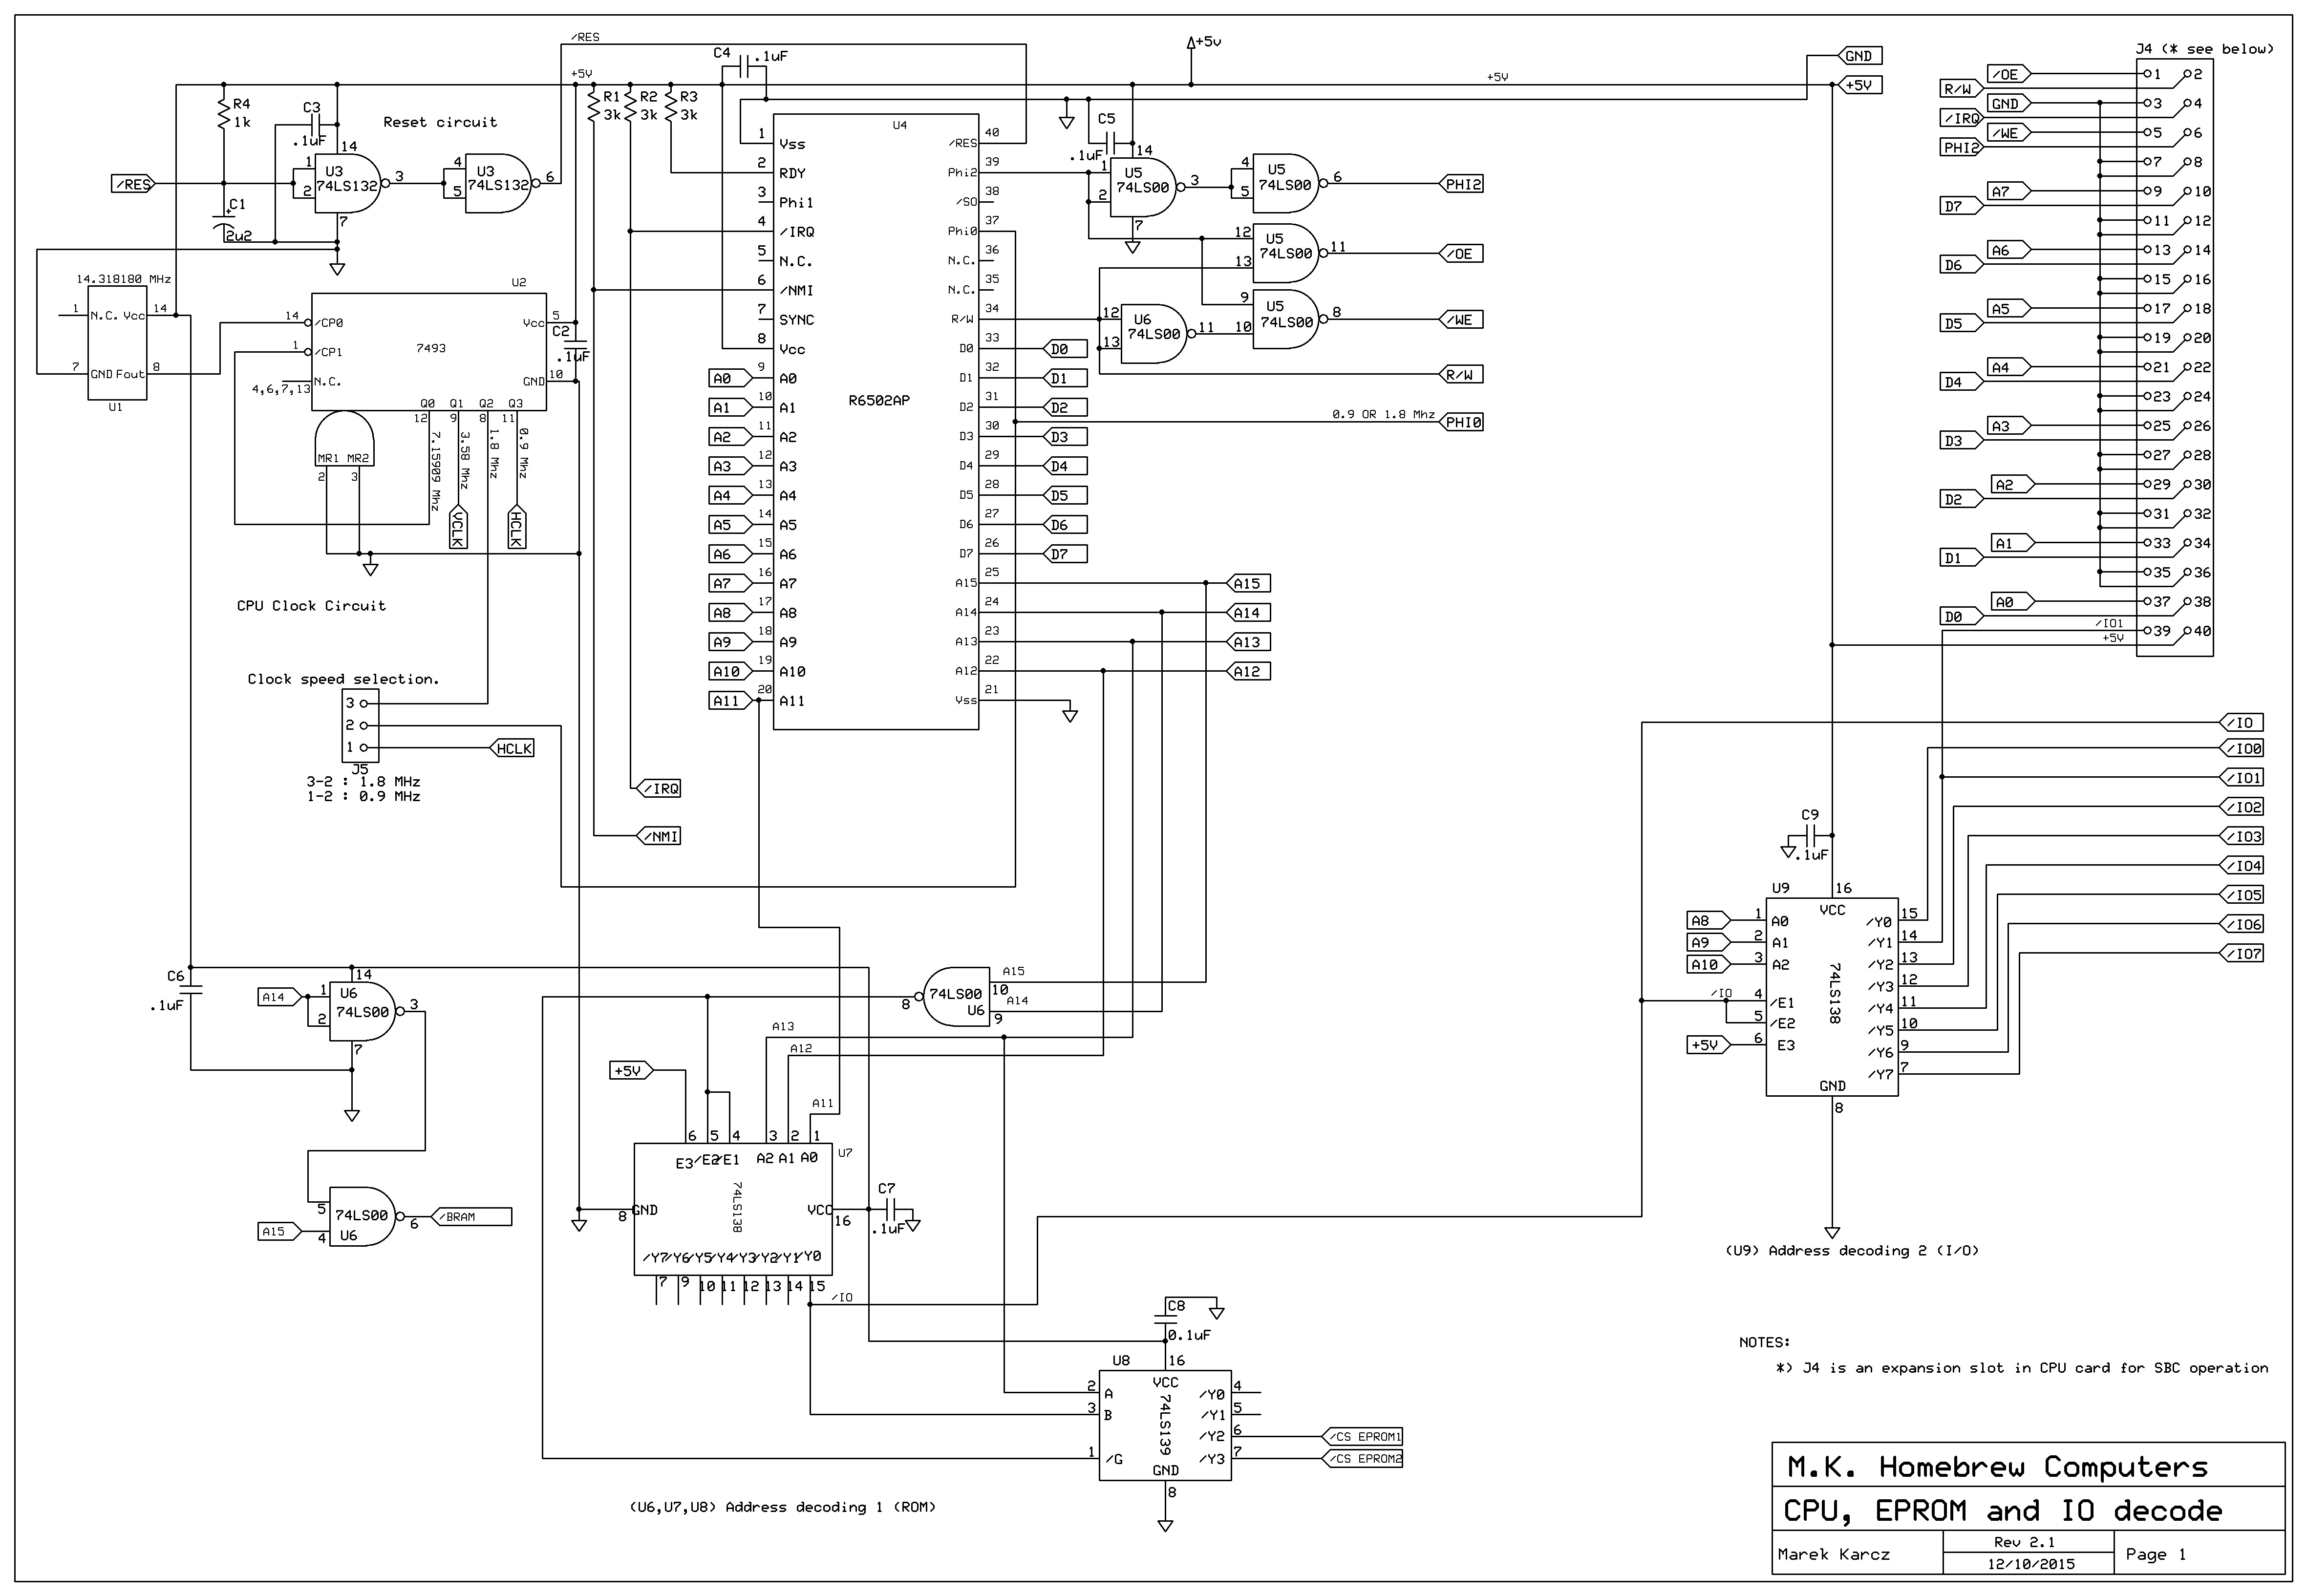 Files   MKHBC-8-Rx   aday.io on amplifier schematic diagram, keyboard schematic diagram, tv schematic diagram, battery schematic diagram, pc schematic diagram, microphone schematic diagram, server schematic diagram, block diagram, ic schematic diagram, motherboard schematic diagram, speaker schematic diagram, iphone 4 schematic diagram, mouse schematic diagram, joystick schematic diagram, hard drive schematic diagram, monitor schematic diagram, port schematic diagram, ups schematic diagram, cmos schematic diagram, smps schematic diagram,